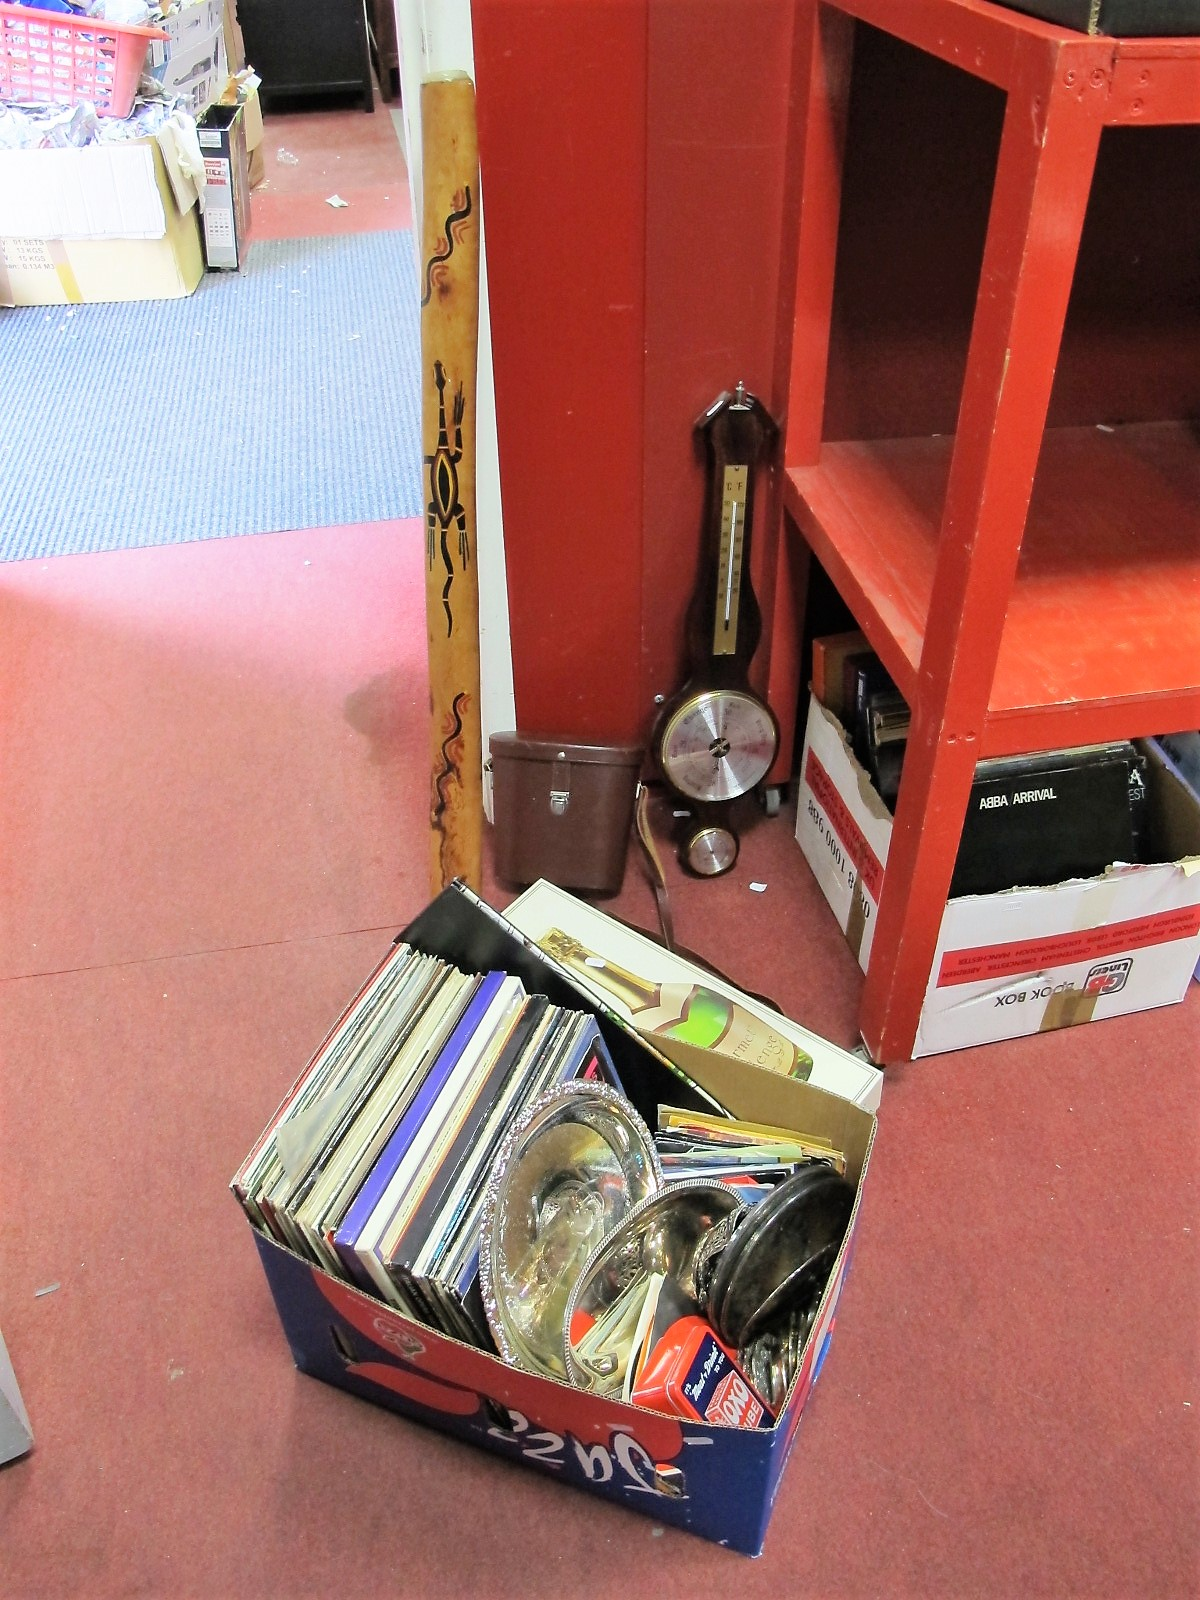 Lot 23 - Stainless Steel and Plated Salvers, coasters, digeridoo, LP's and 45rpm records, Gourmet table